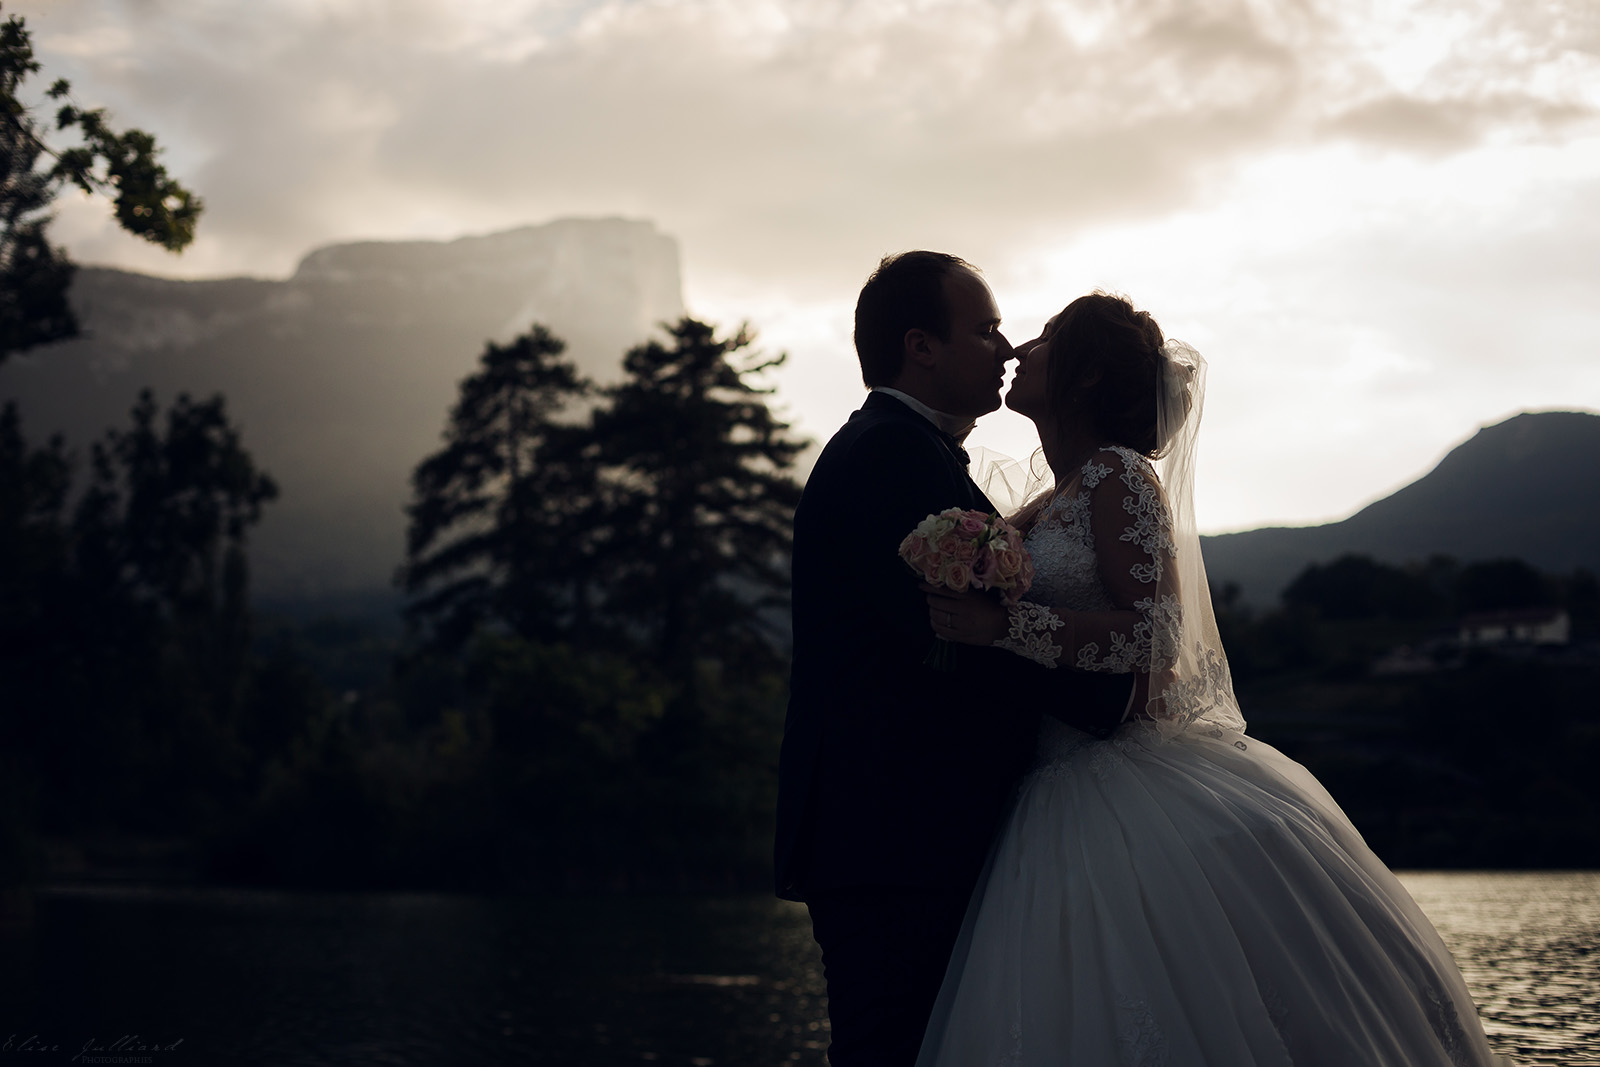 mariage-photographe-elise-julliard-wedding-love-session-lac-saint-andre-auvergne-rhone-alpes-lyon-chambery-seance-photo-couple-trash-the-dress-7